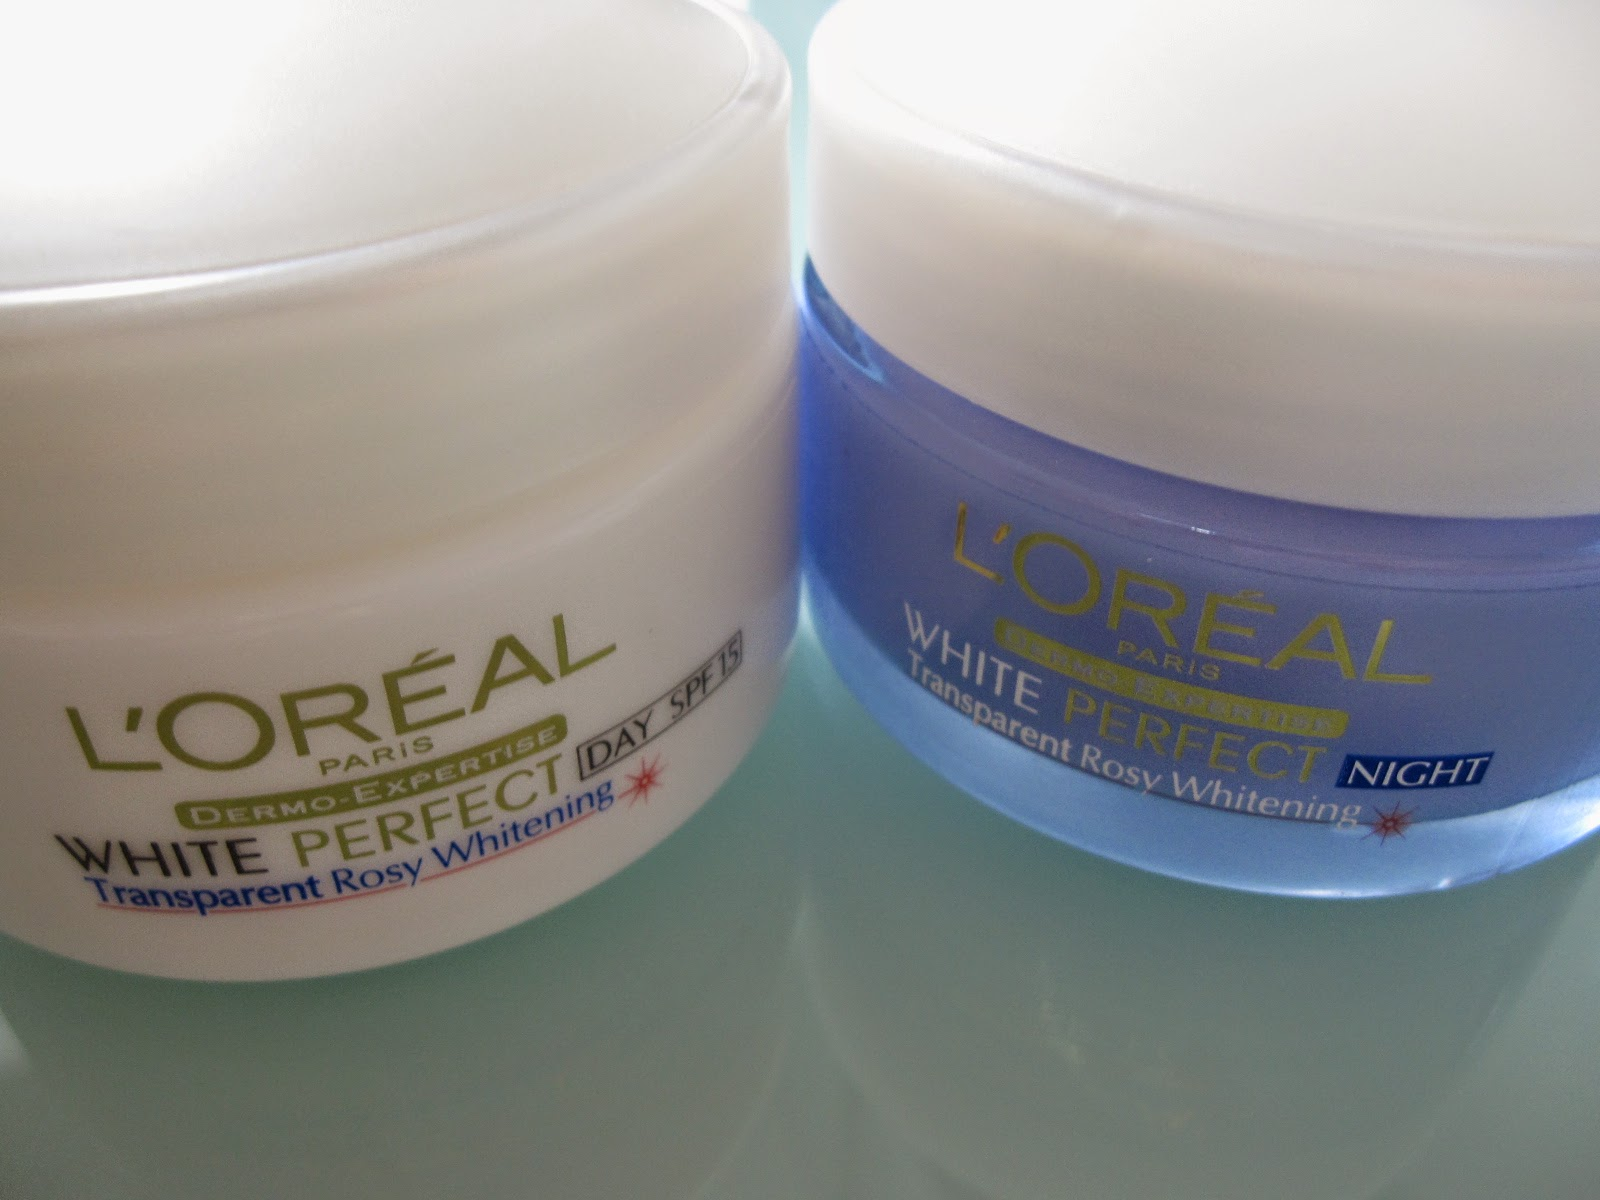 L' Oreal white perfect Transparent rosy whitening Day & night